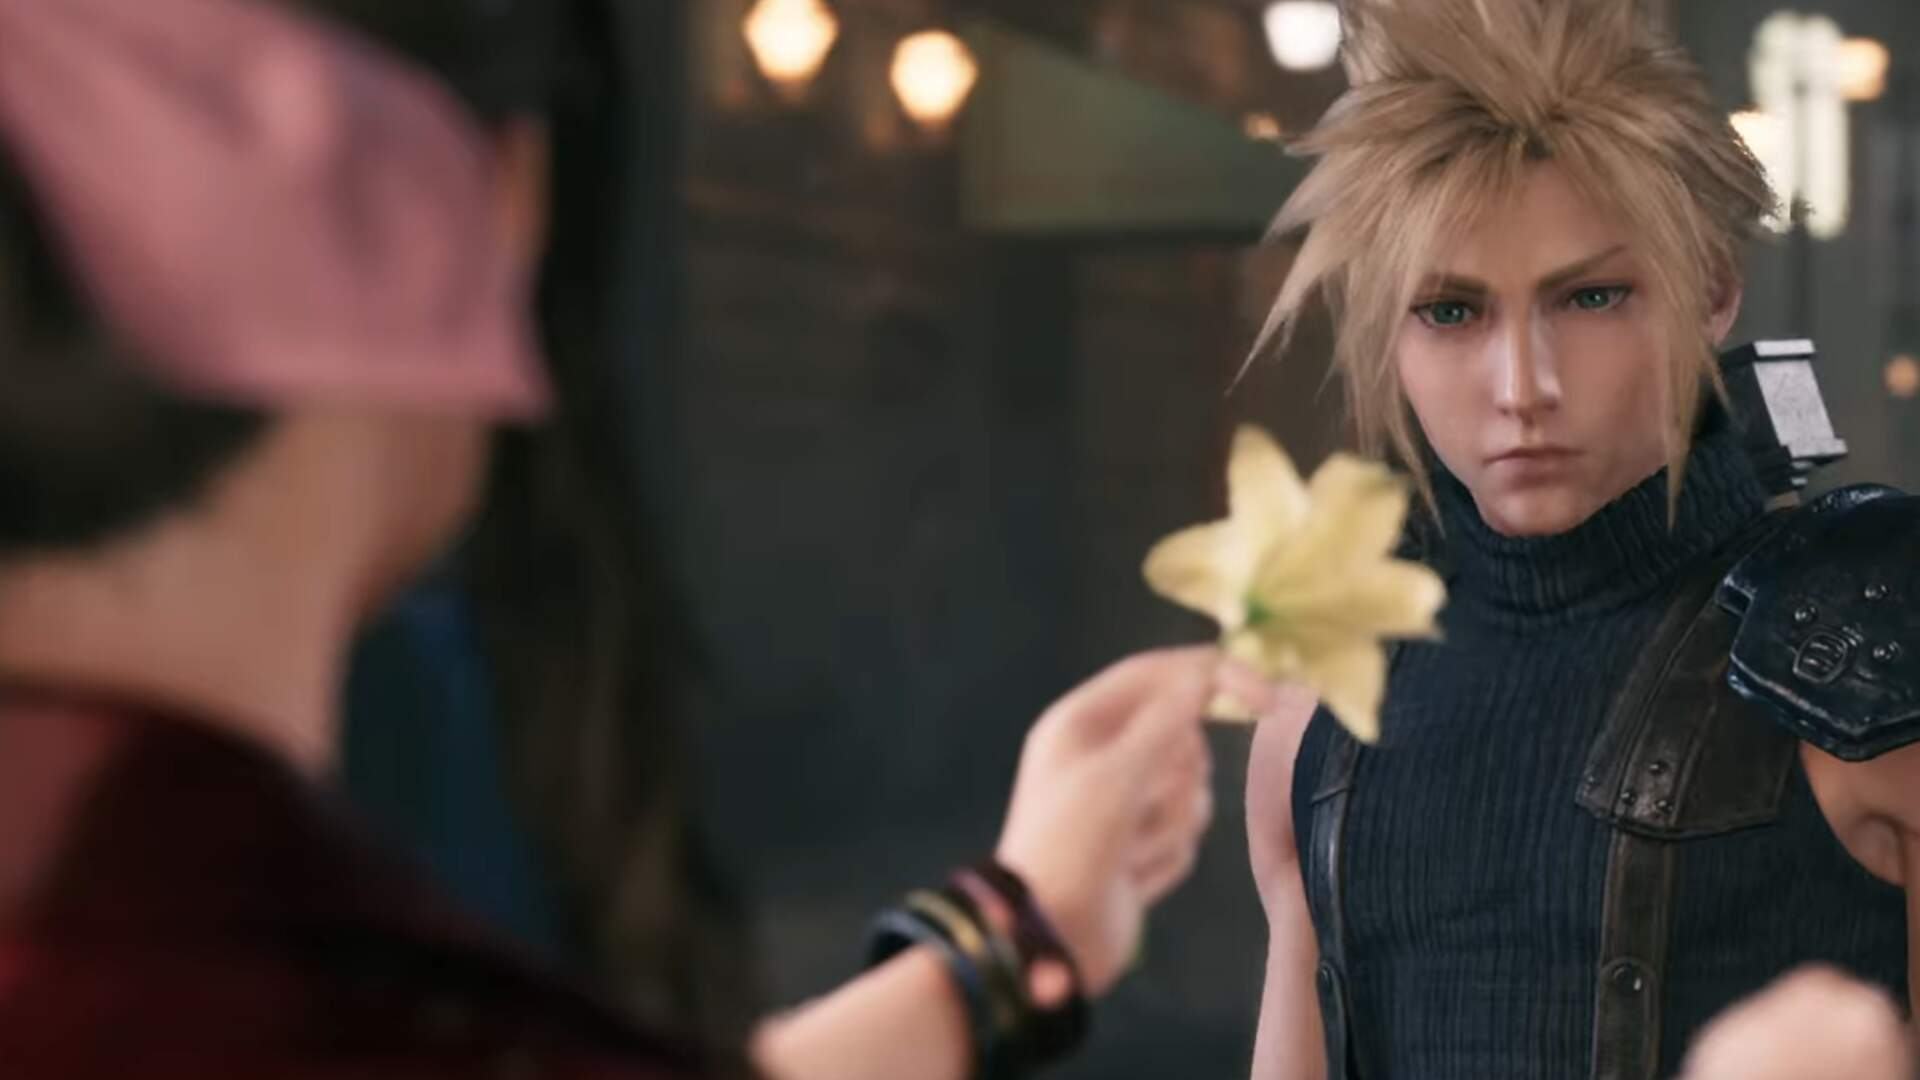 New Final Fantasy 7 Remake Trailers Tease the Arrival of Meteor